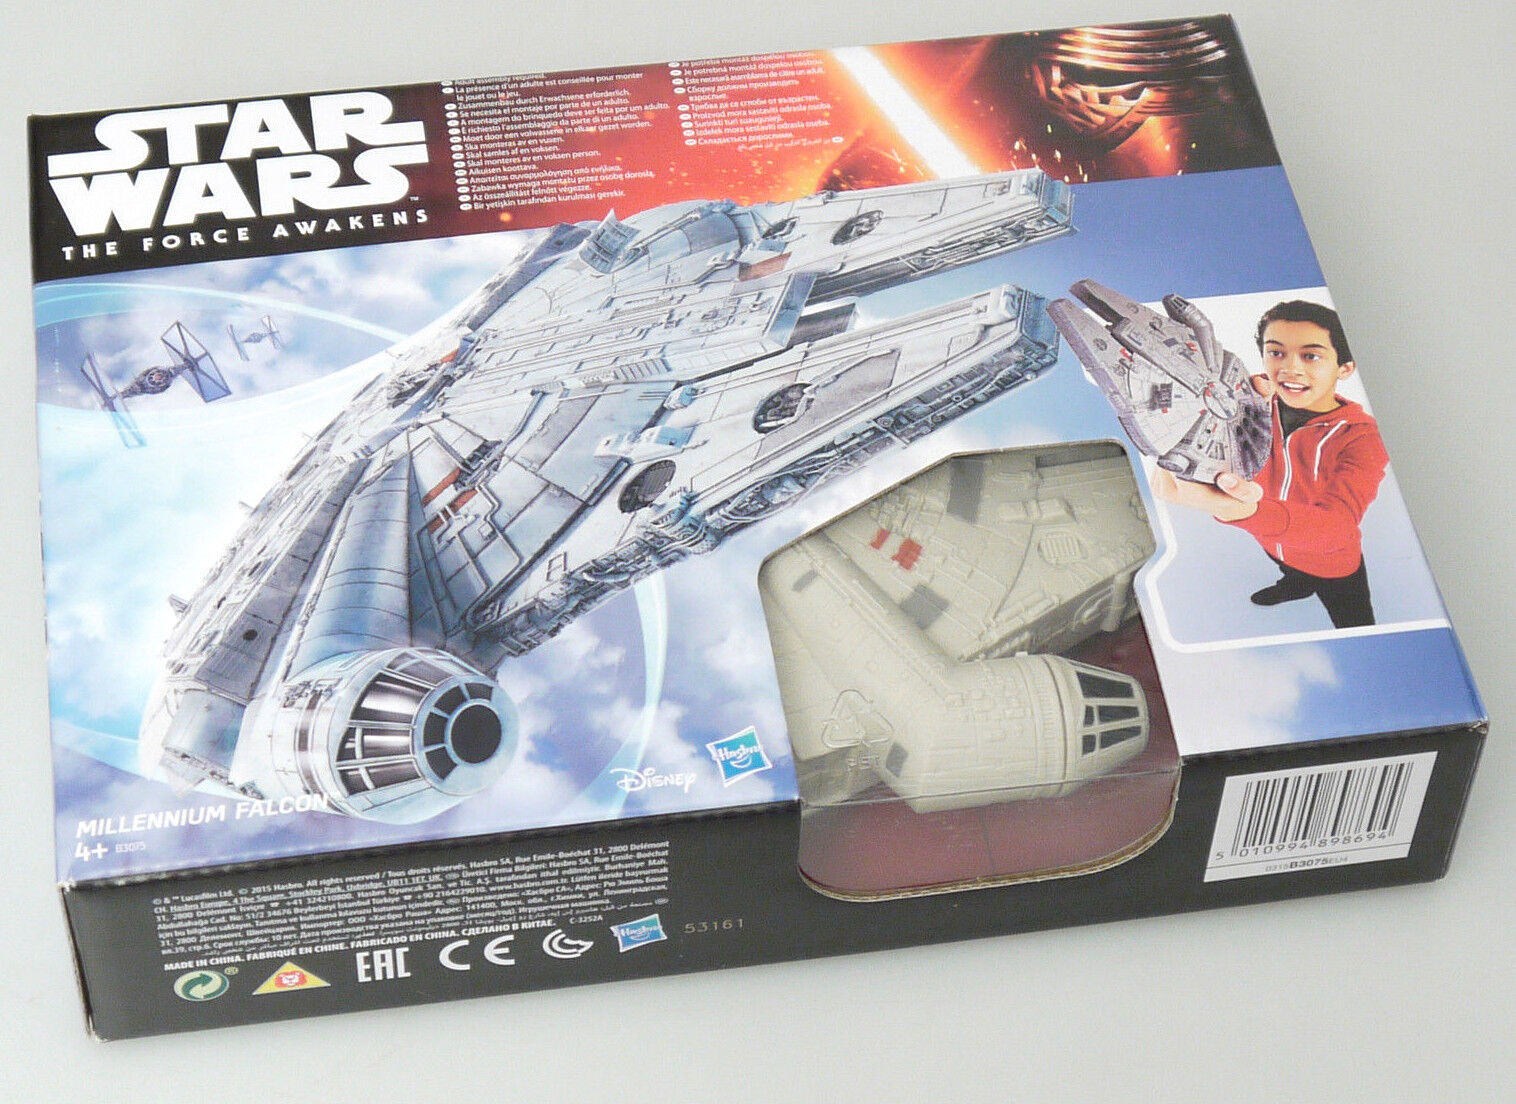 (PRL) STAR WARS THE FORCE AWAKENS MILLENNIUM FALCON TOY GIOCATTOLO COLLECTION